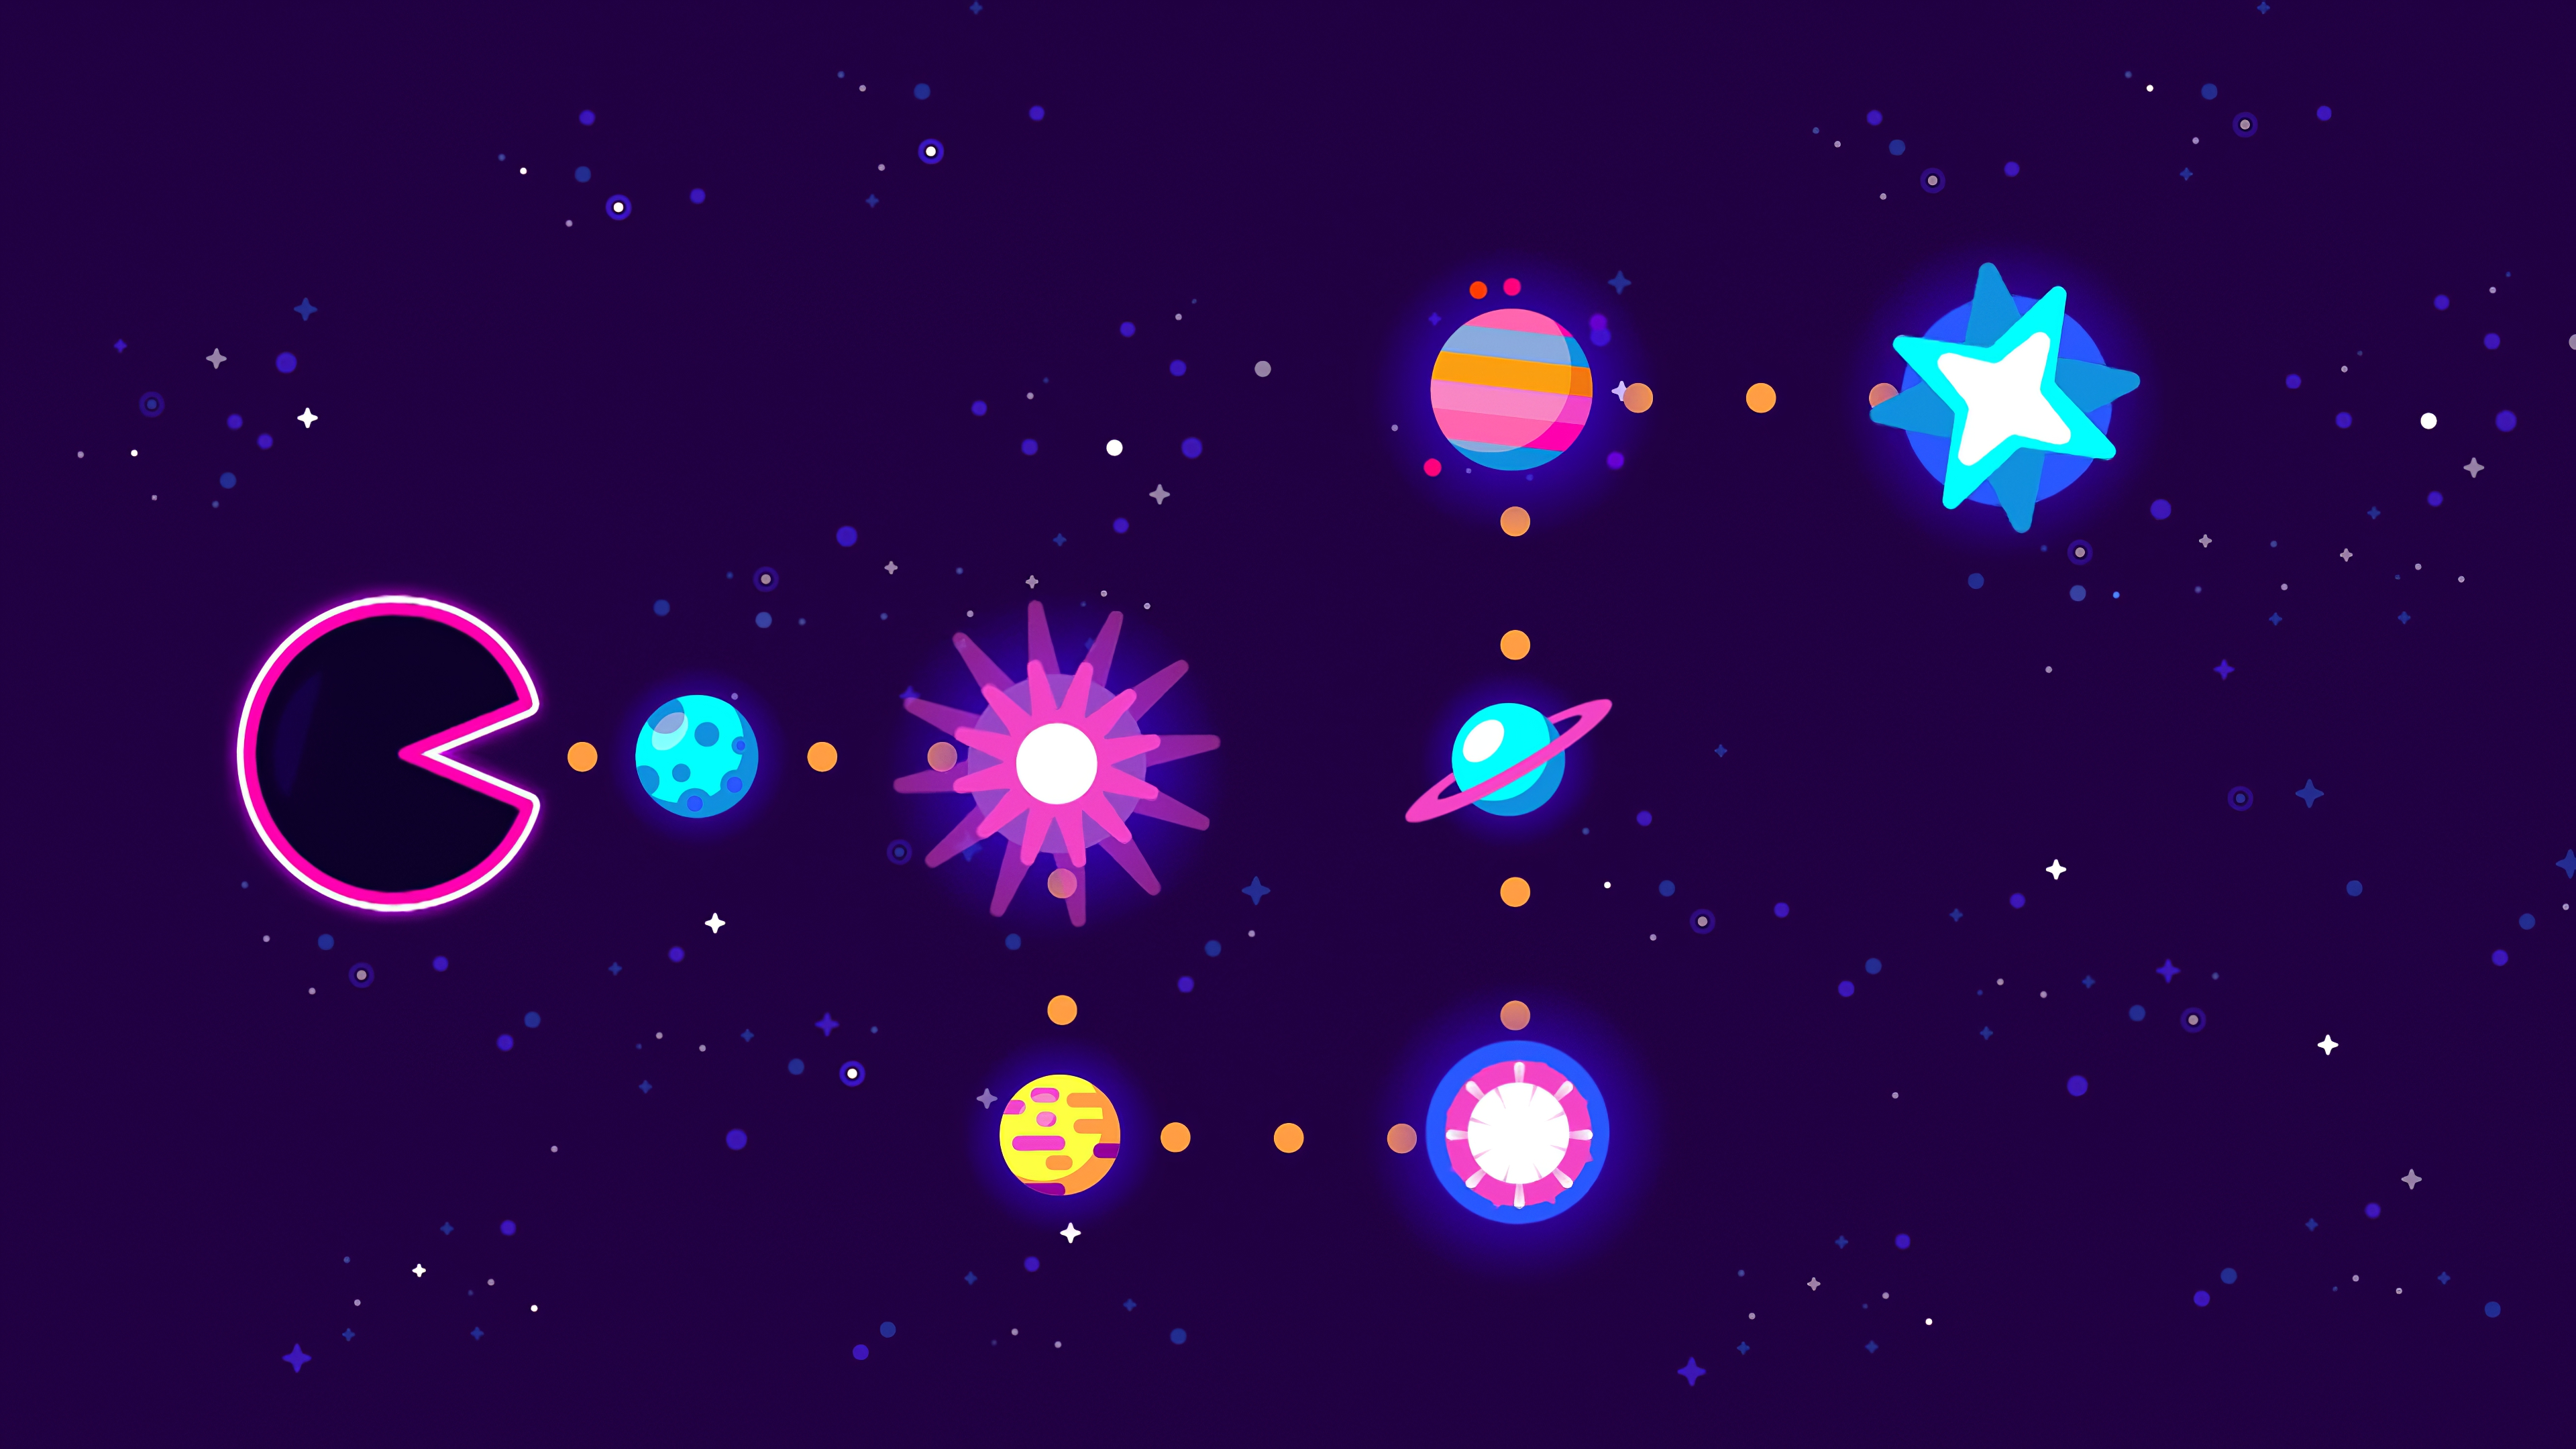 Digital Art Minimalist Pac Man Planet Space 3840x2160